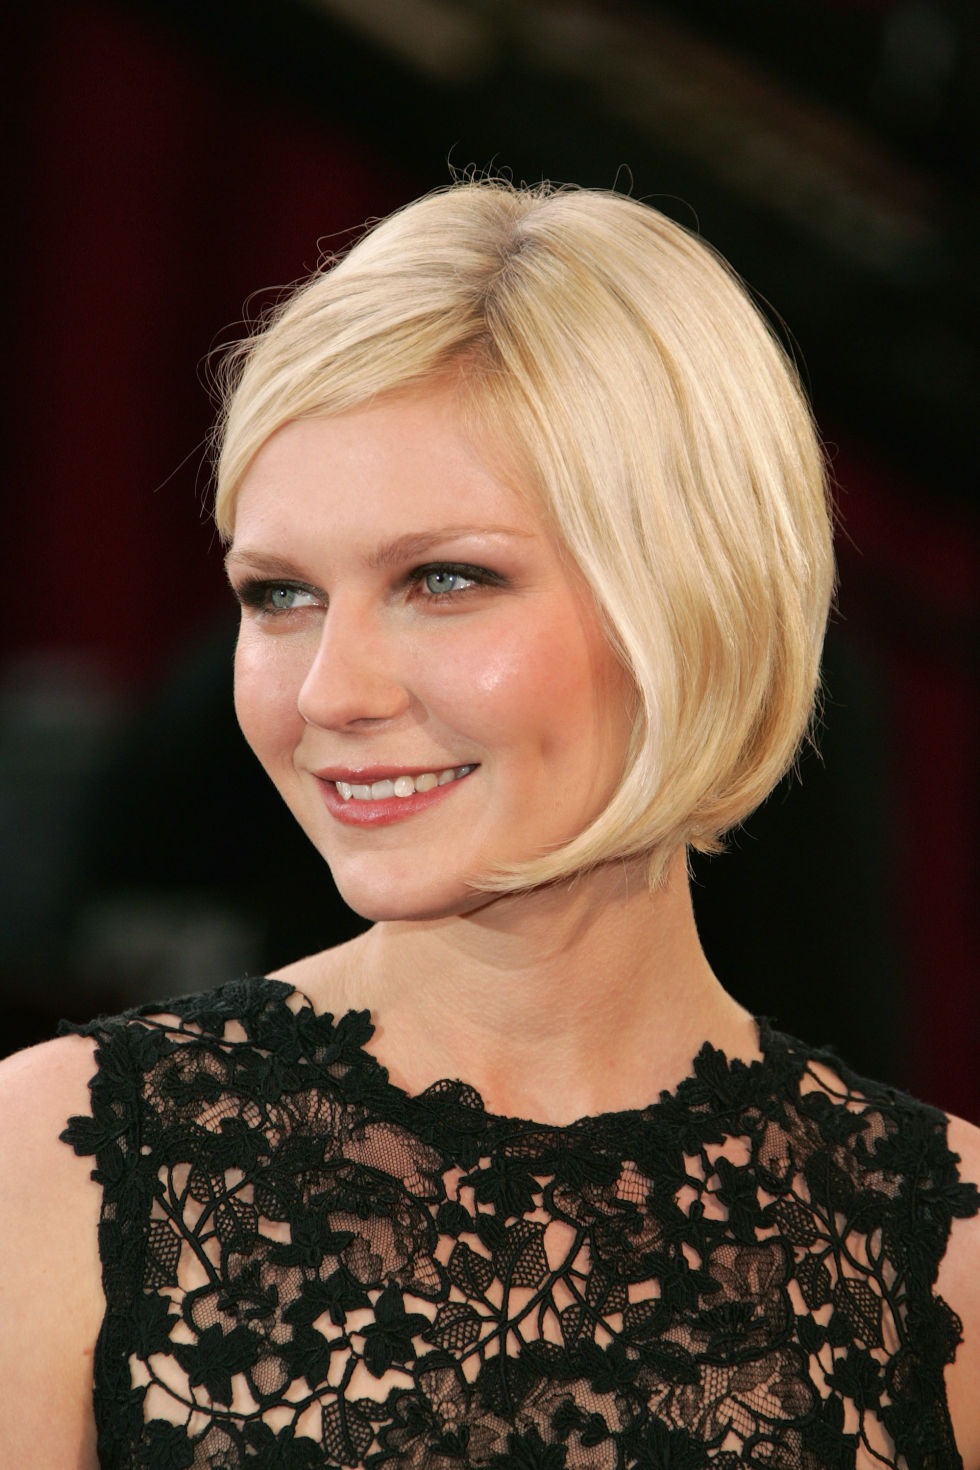 Bob Cut Hairstyles 23 bob hairstyle 2017 45 Best Bob Styles Of 2017 Bob Haircuts Hairstyles For Women